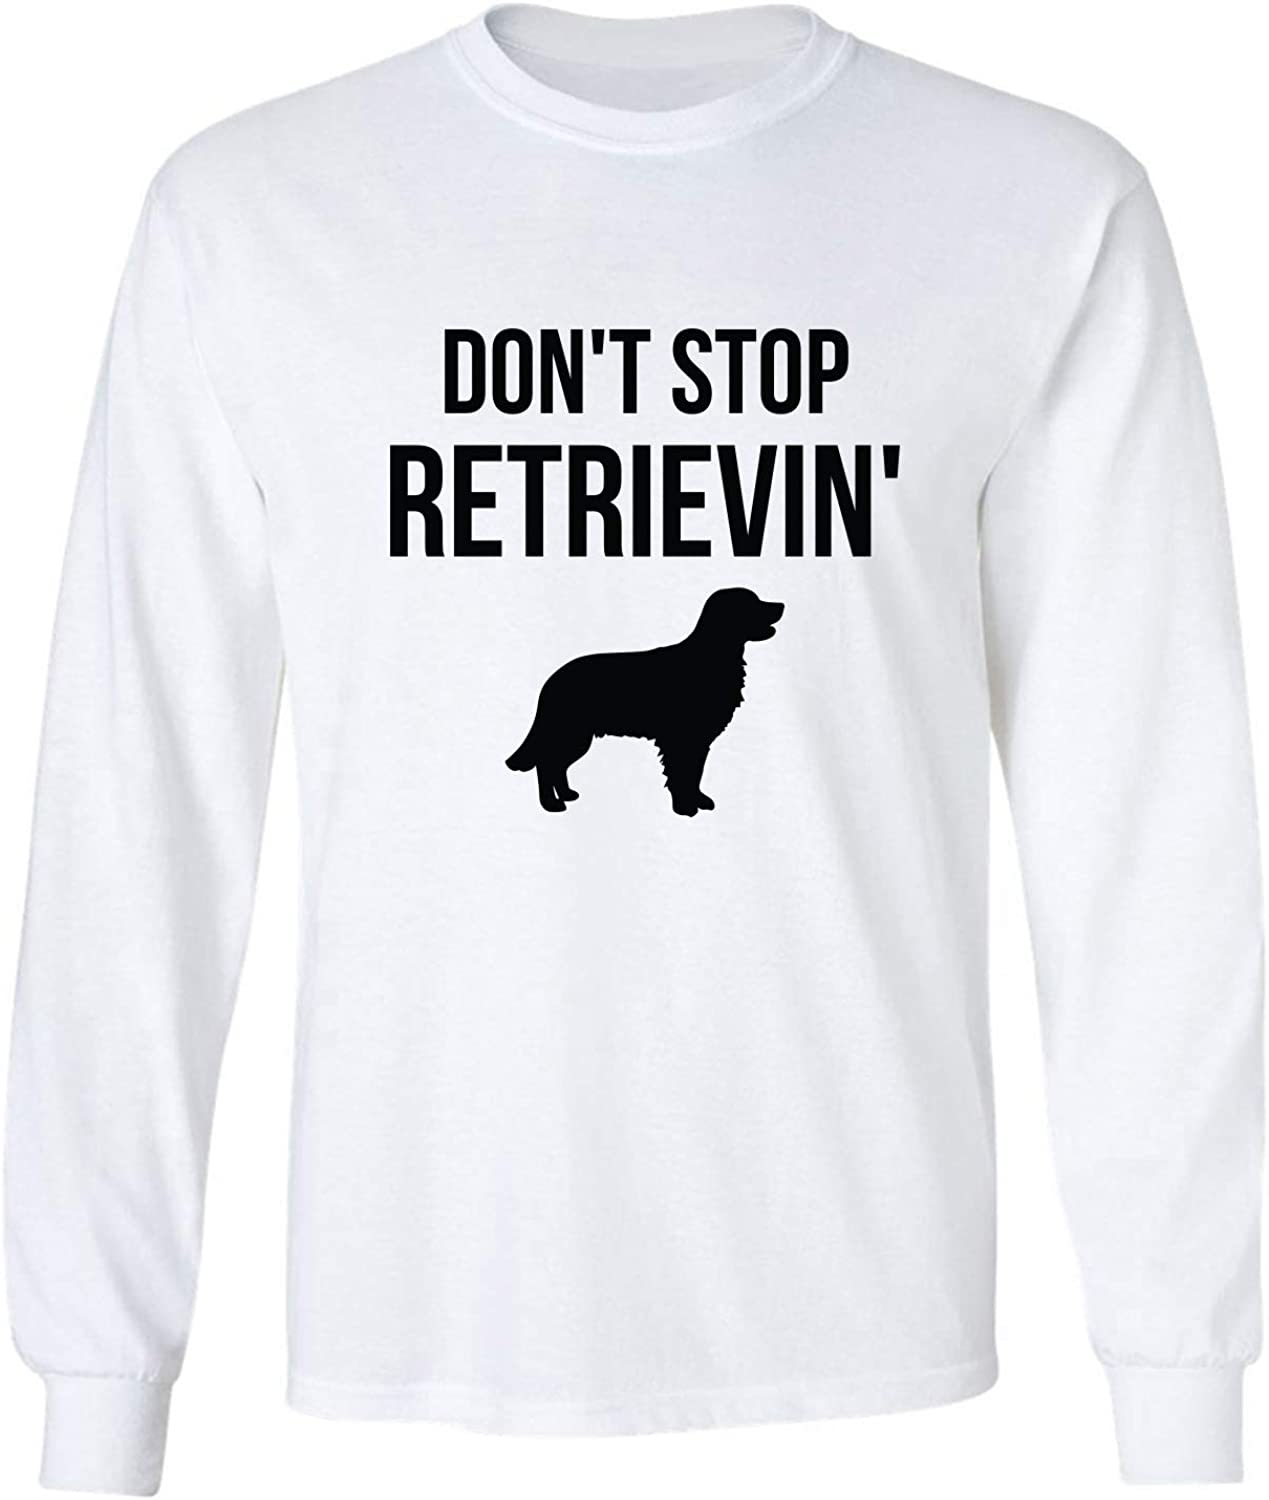 Don't Stop Retrievin' Adult Long Sleeve T-Shirt in White - XXX-Large